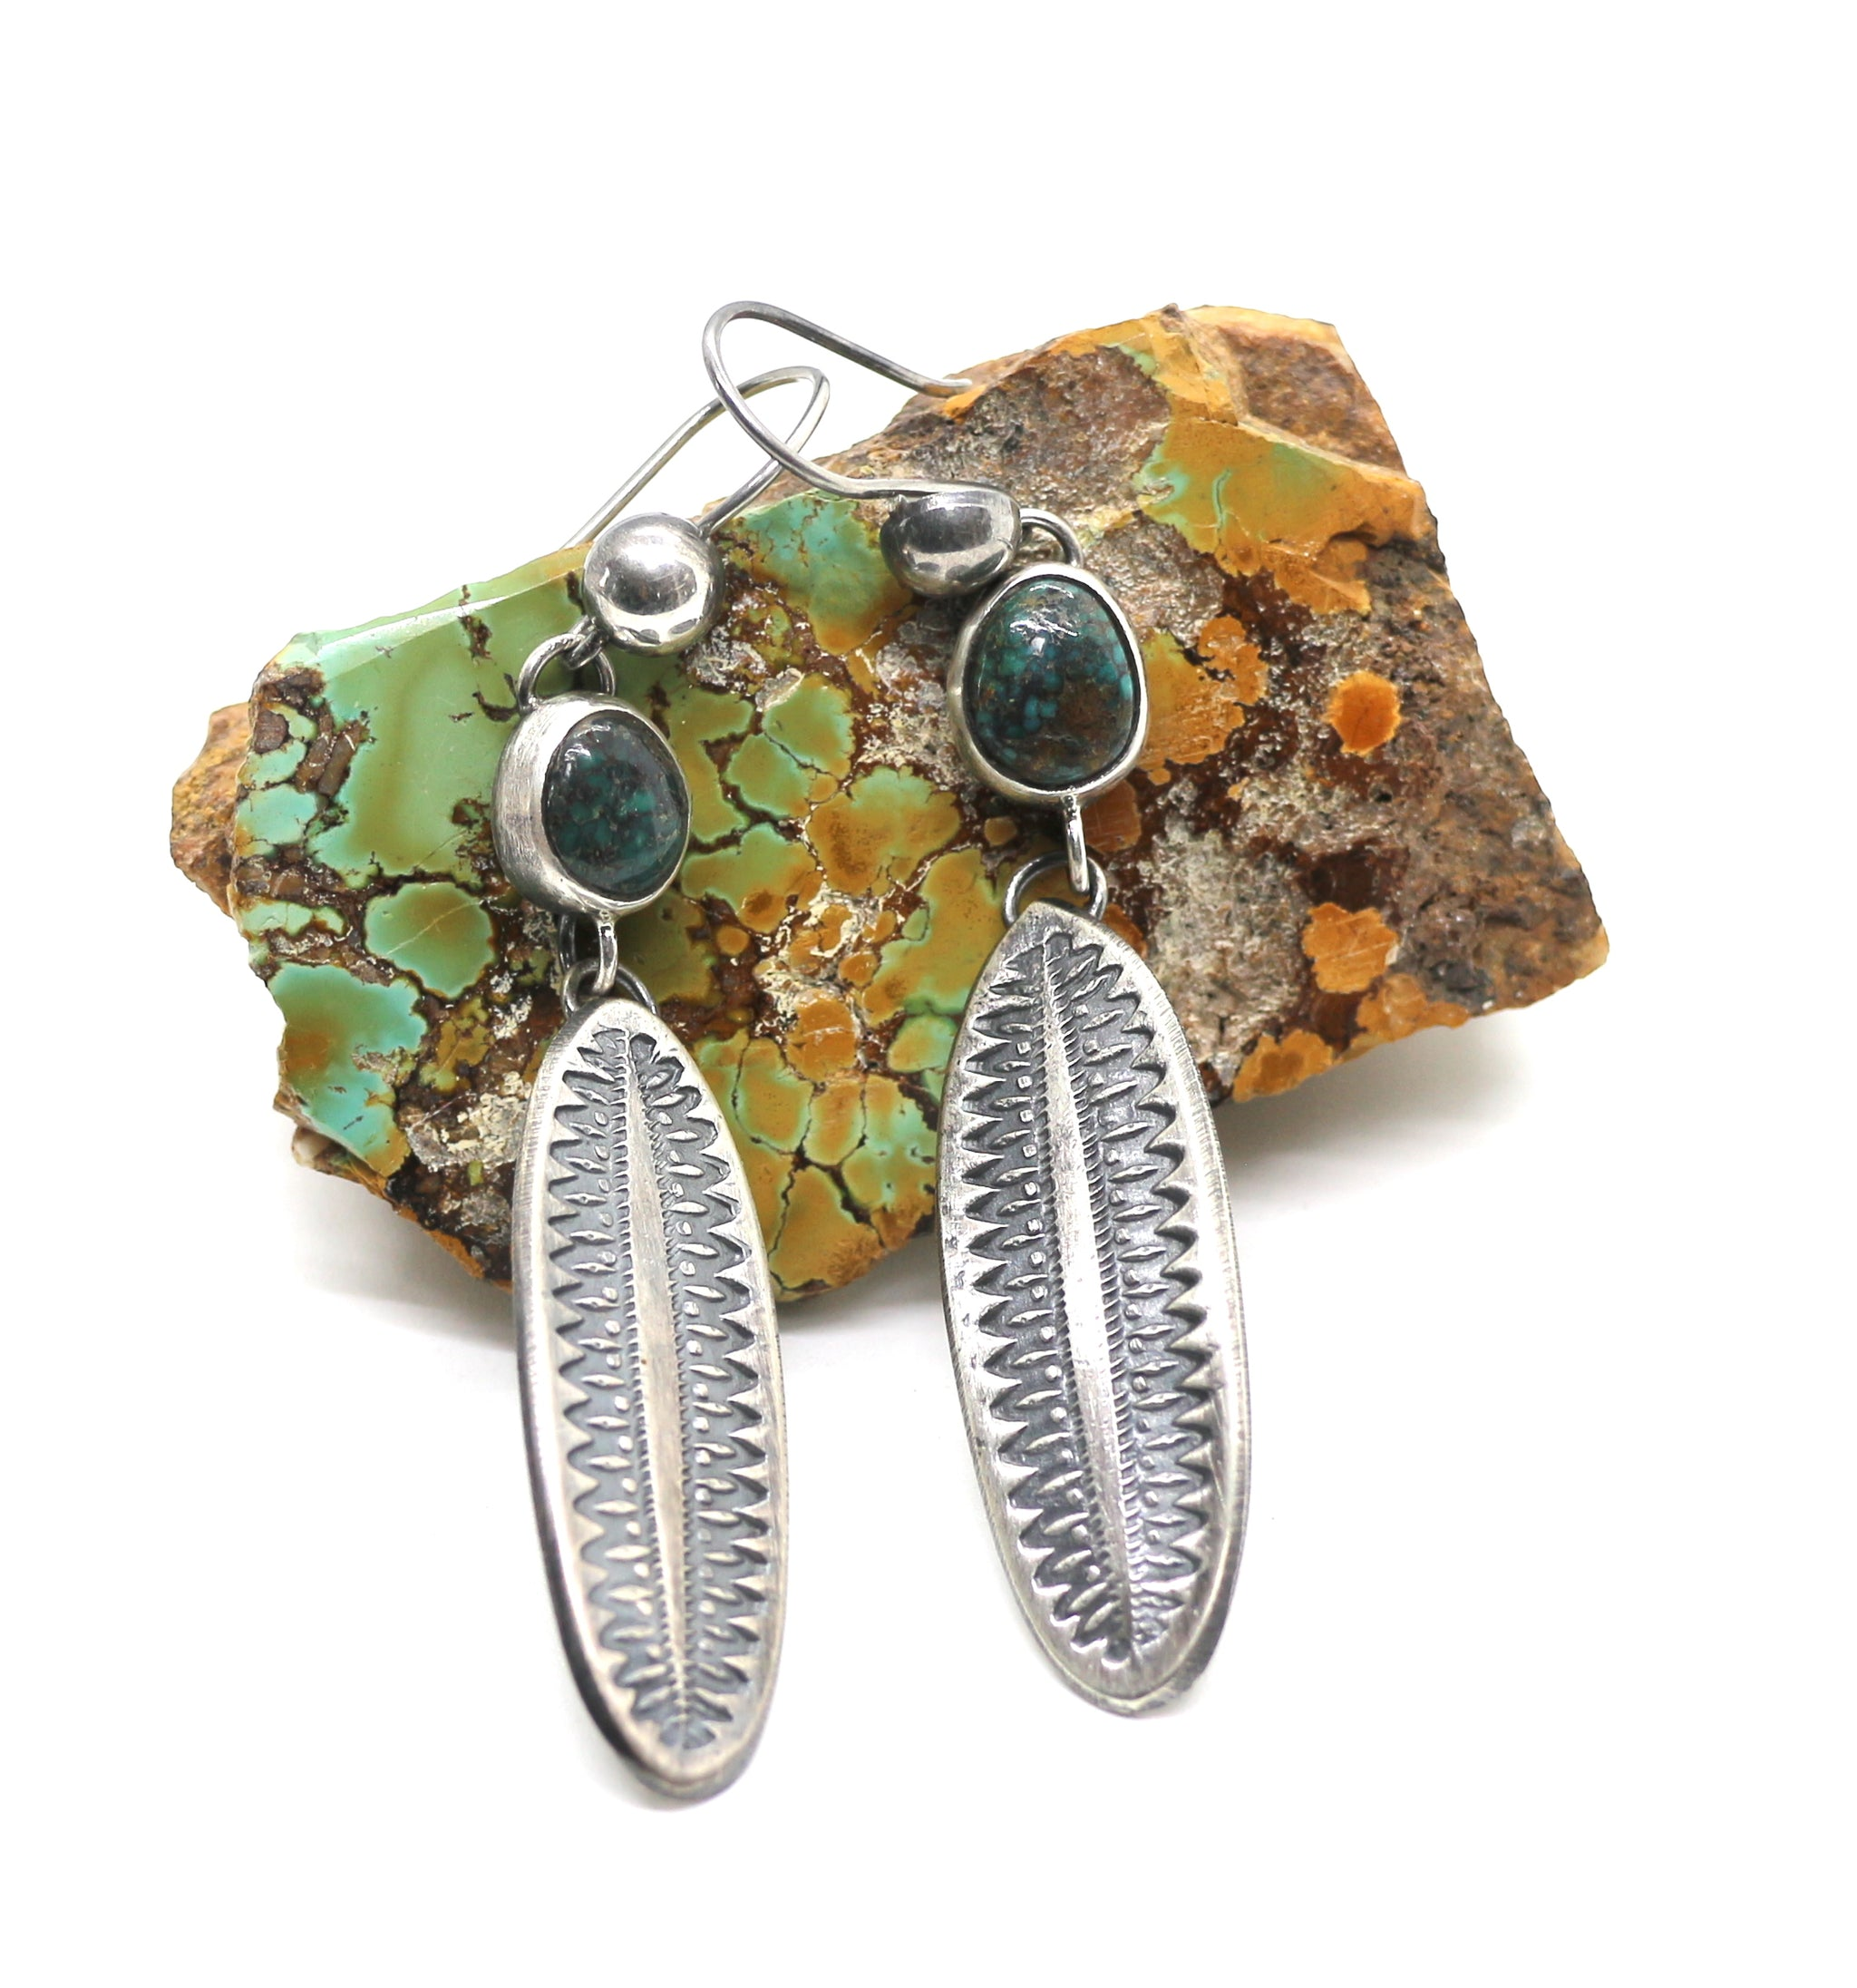 Jesse Robbins Cheyenne Earrings